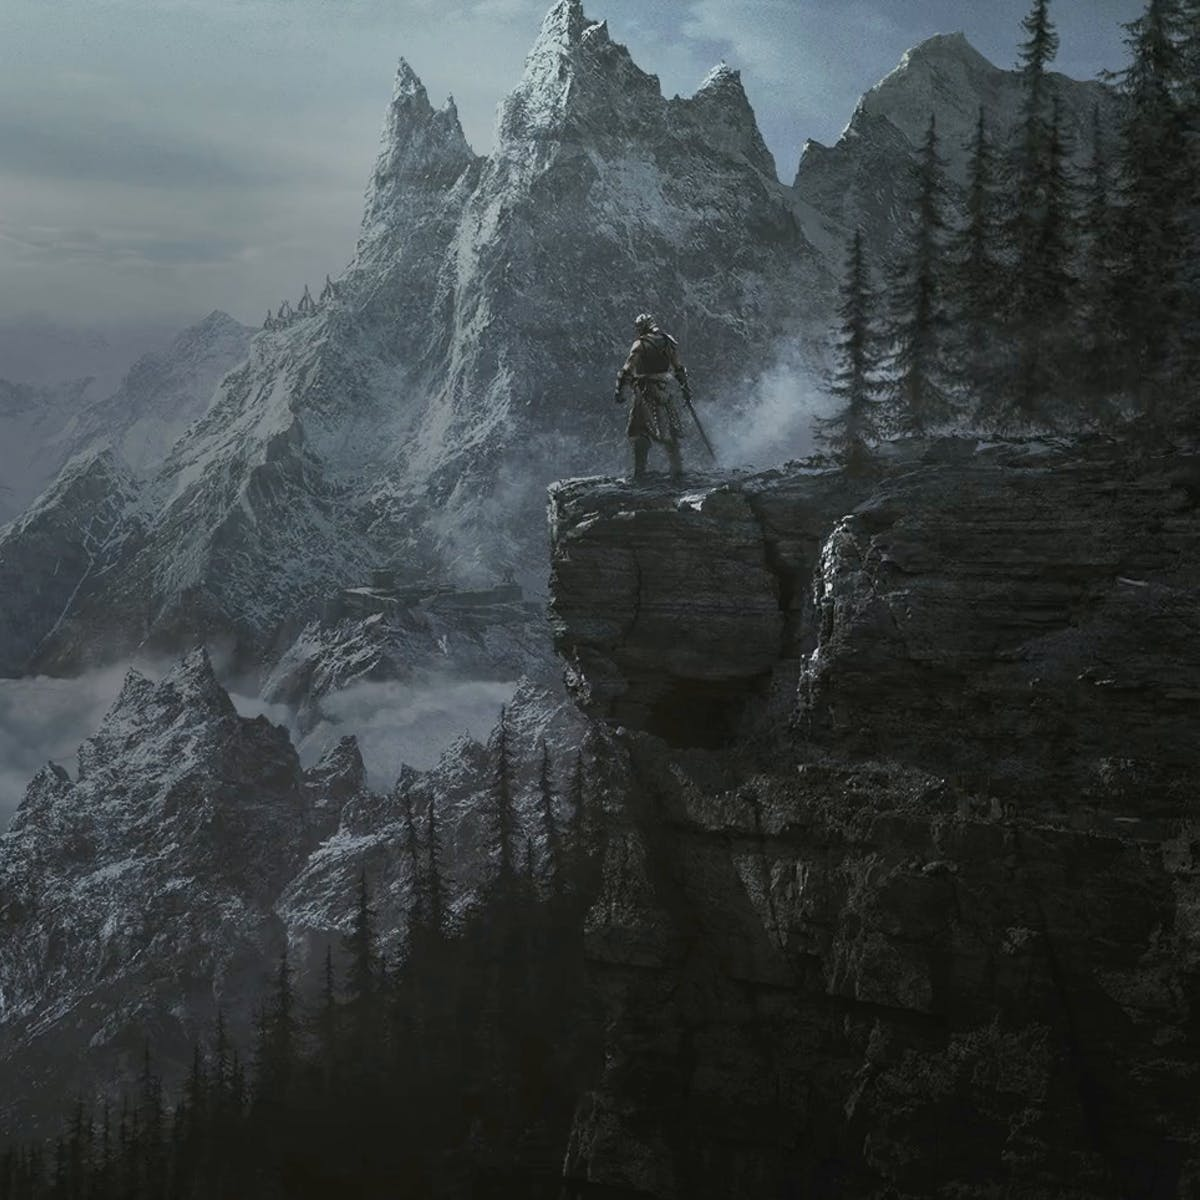 Elder Scrolls 6': How 'TES' Keeps Getting Bigger Without Losing Its